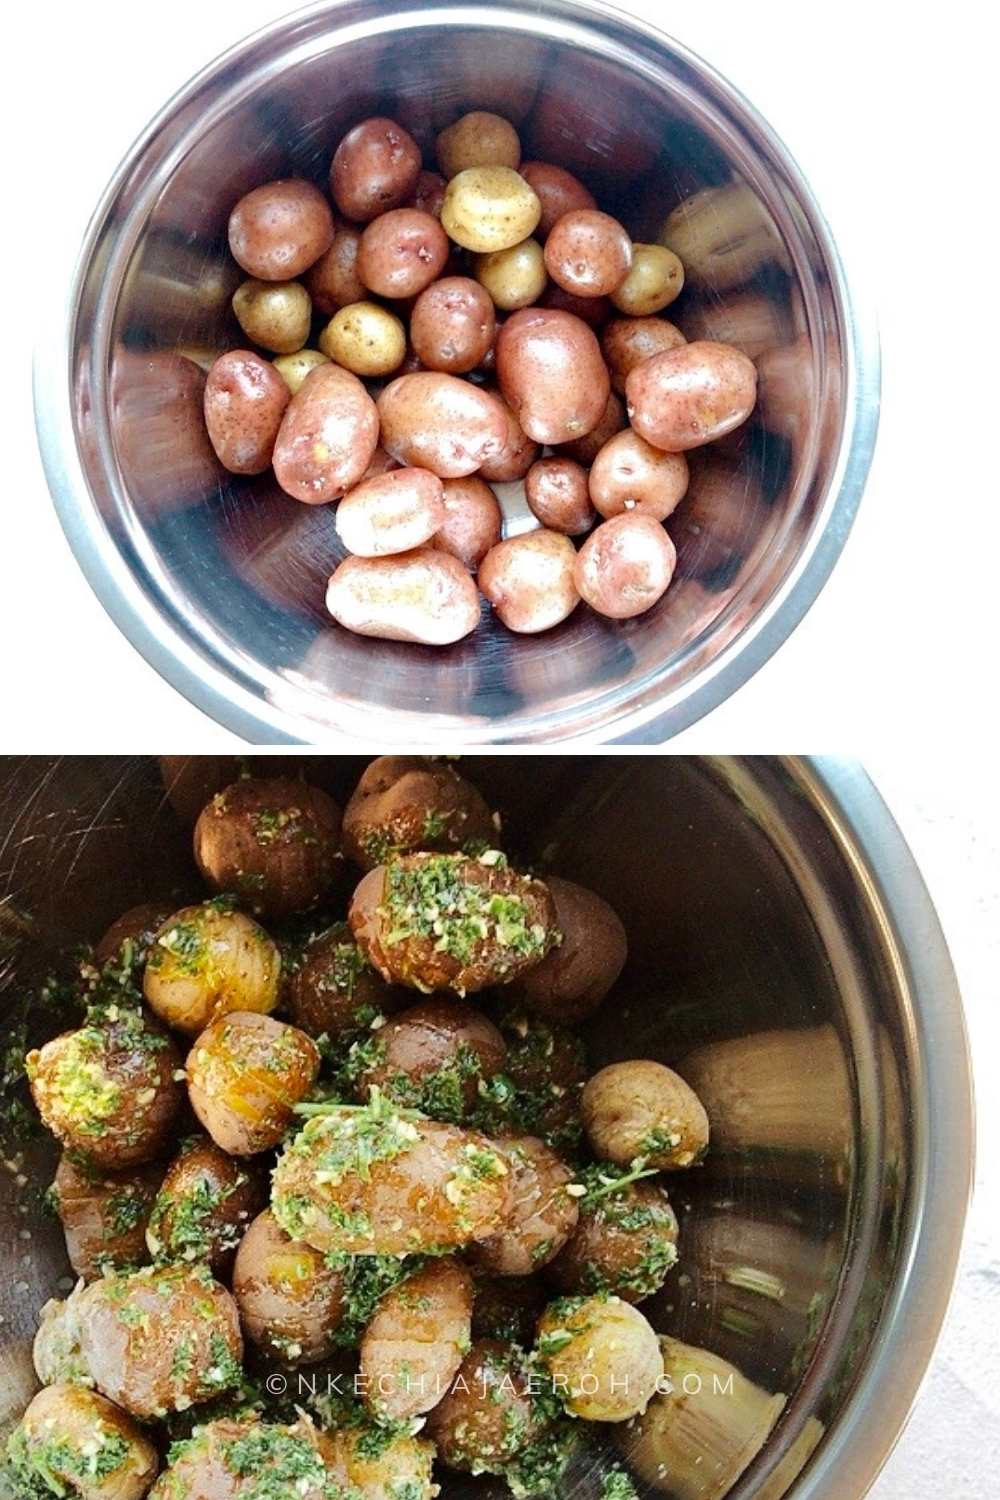 Making bacon wrapped small potato bites is super easy. First, wash all the vegetables, then parboil or half cook the baby potatoes. Second, marinate the potatoes with the coconut cream parsley pesto. Third, wrap with the little potatoes with bacon, and then bake till doneness.